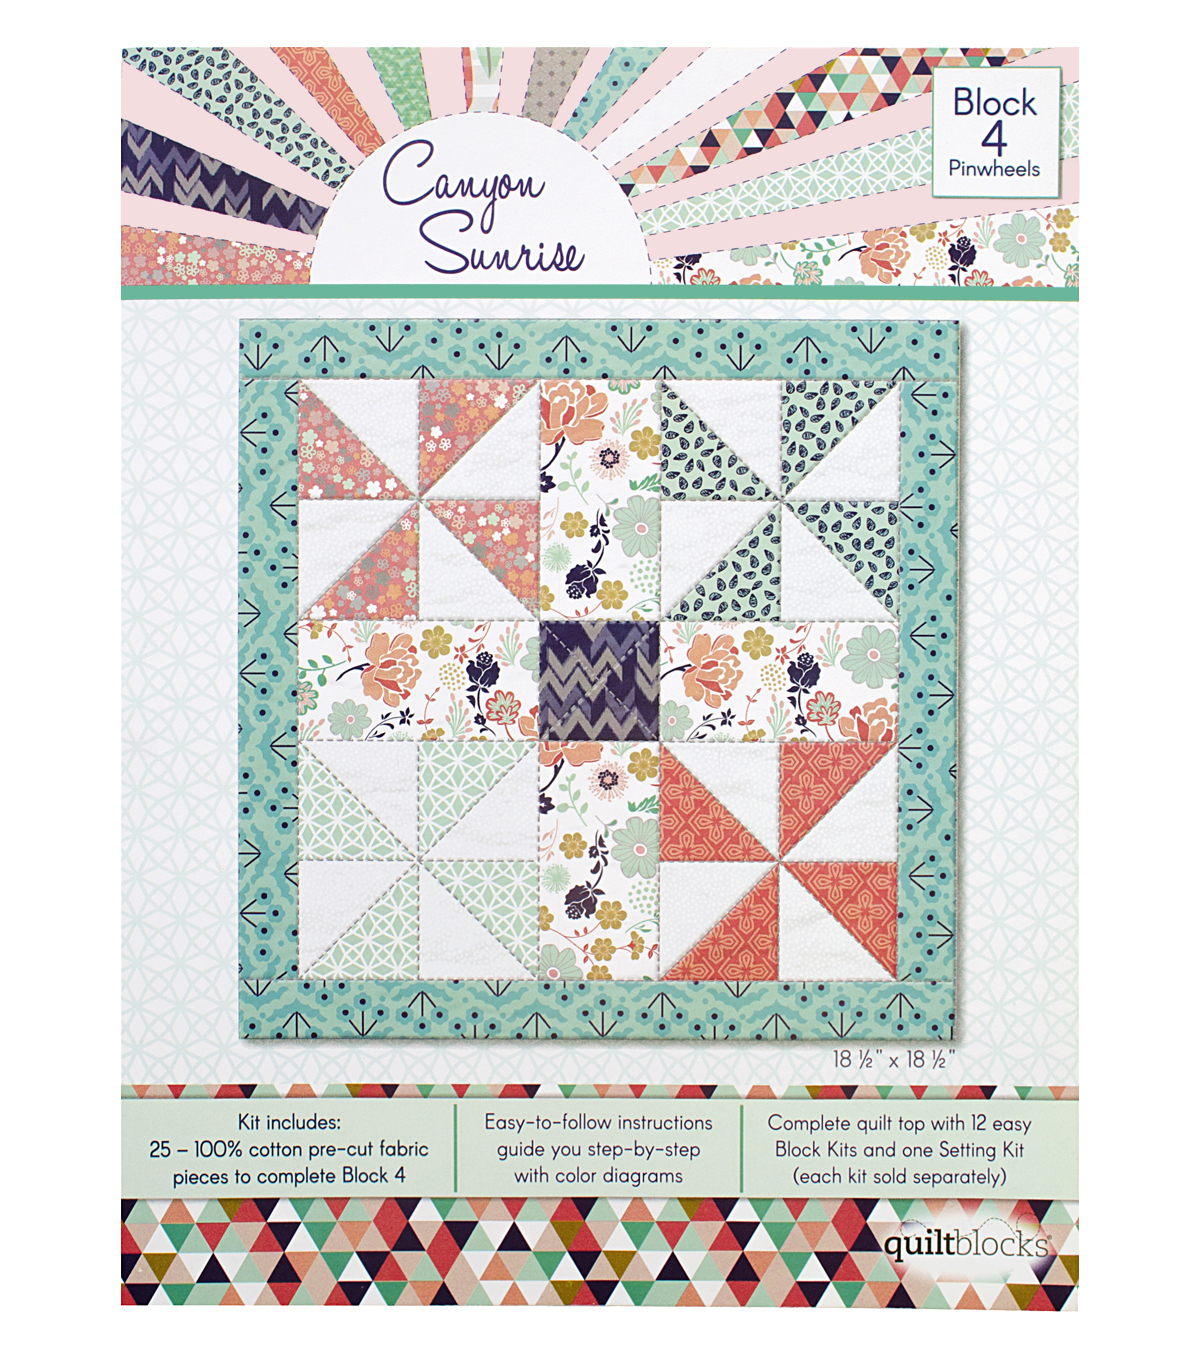 Quilt Block of the Month Cotton Fabric 18.5